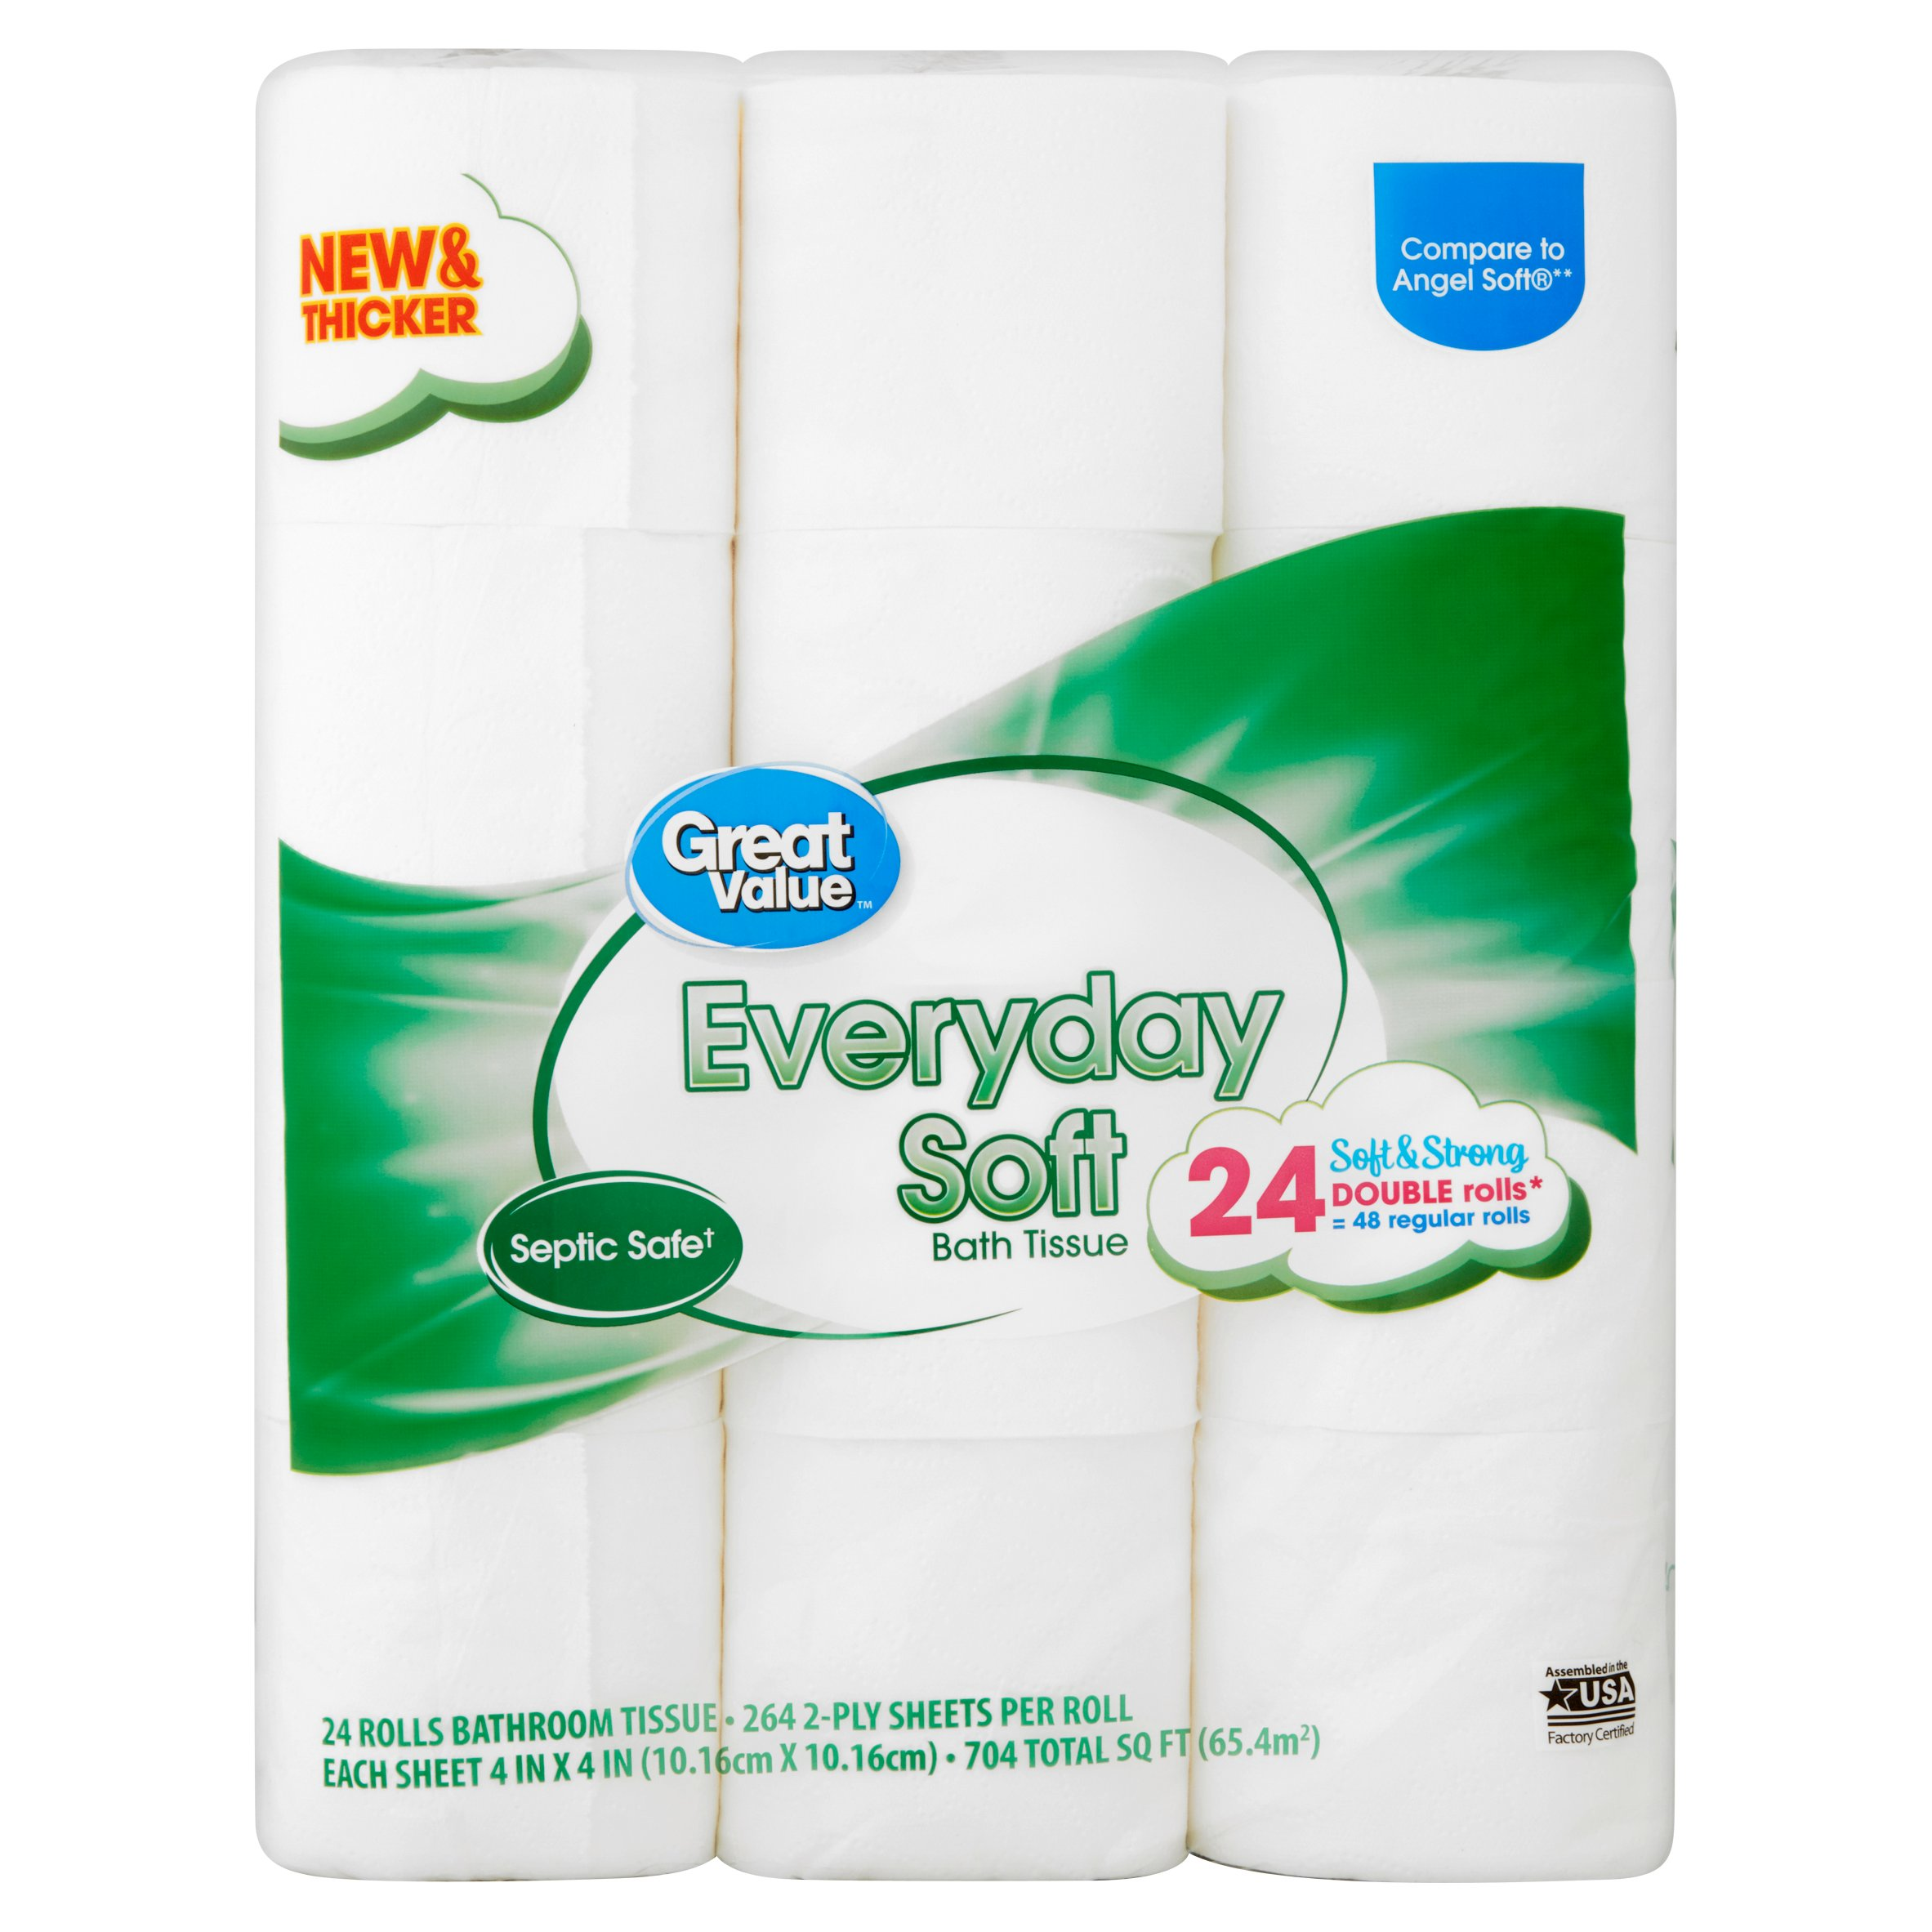 Great Value Bath Tissue  Everyday Soft  24 Double Rolls. Toilet Paper   Walmart com